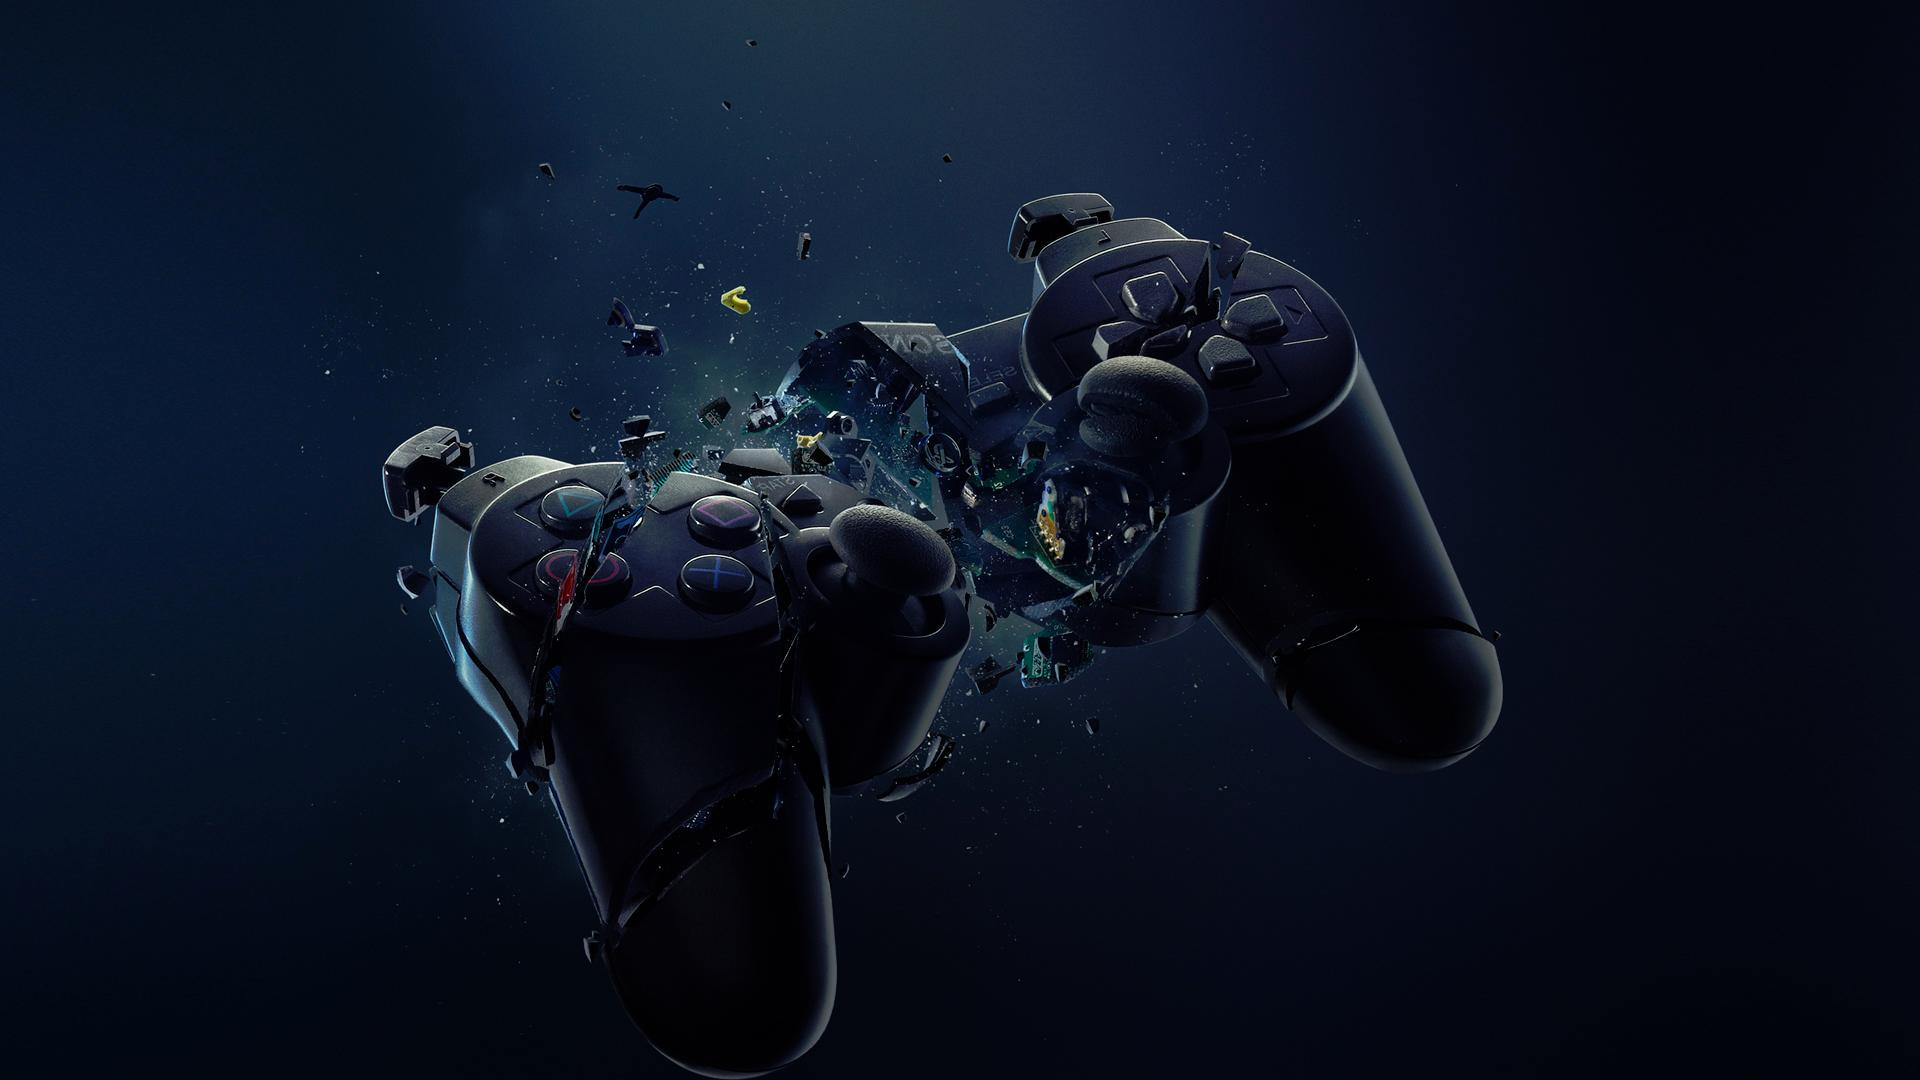 Wallpapers For > Playstation Wallpapers Hd